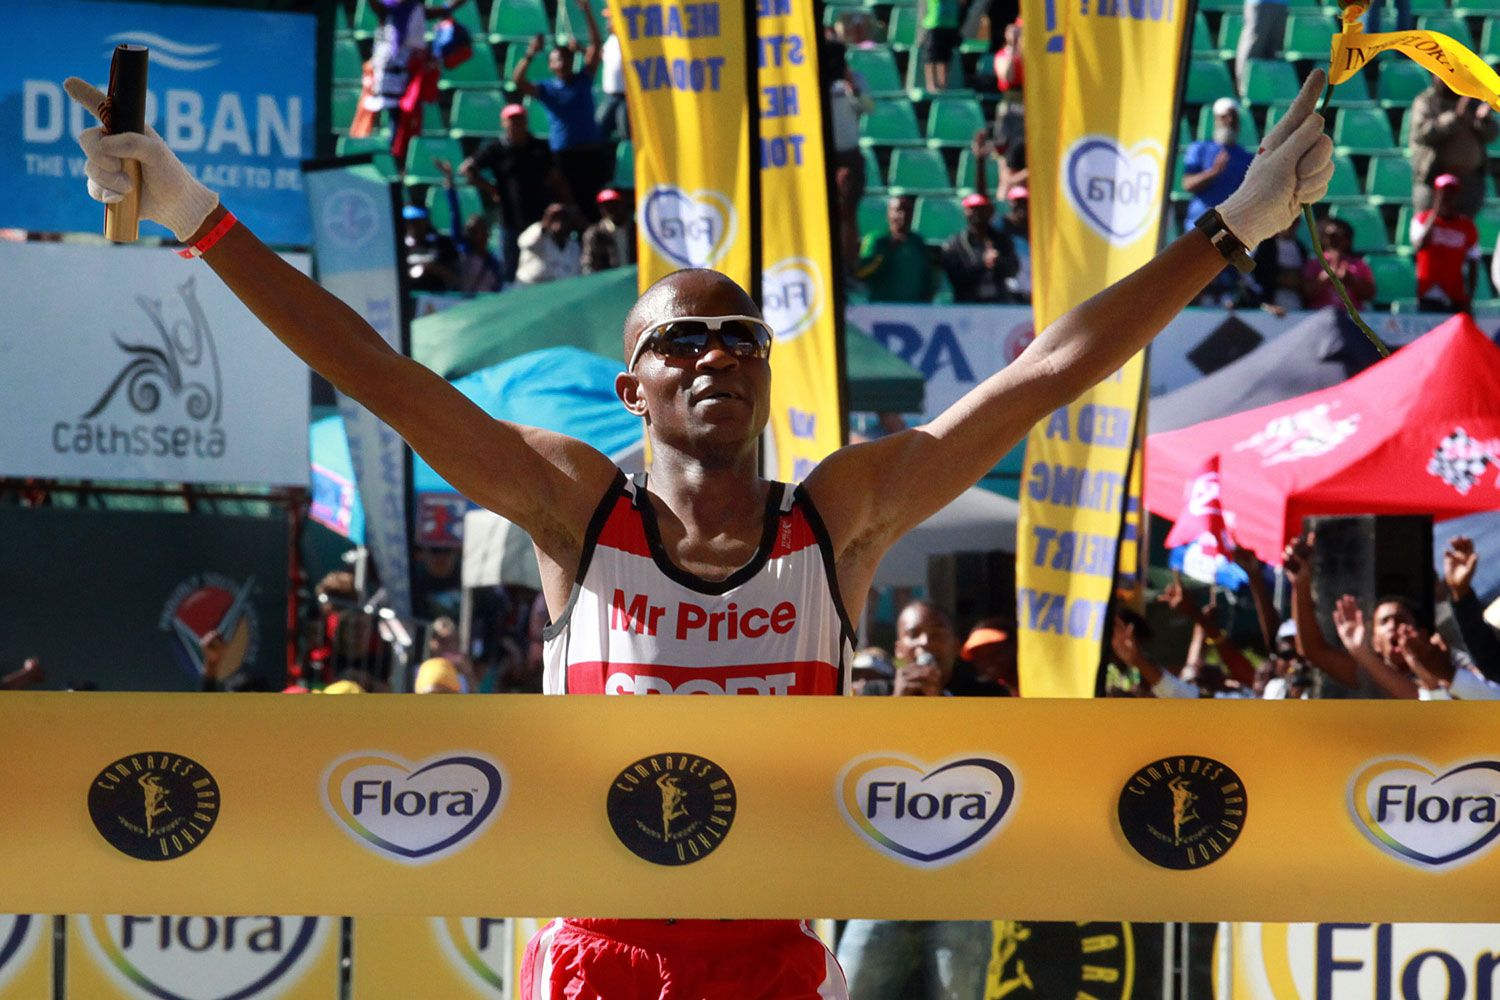 South Africa long-distance runner Ludwick Mamabolo crosses the finish line to win the 89km Comrades Marathon between Pietermaritzburg and Durban on June 3, 2012.